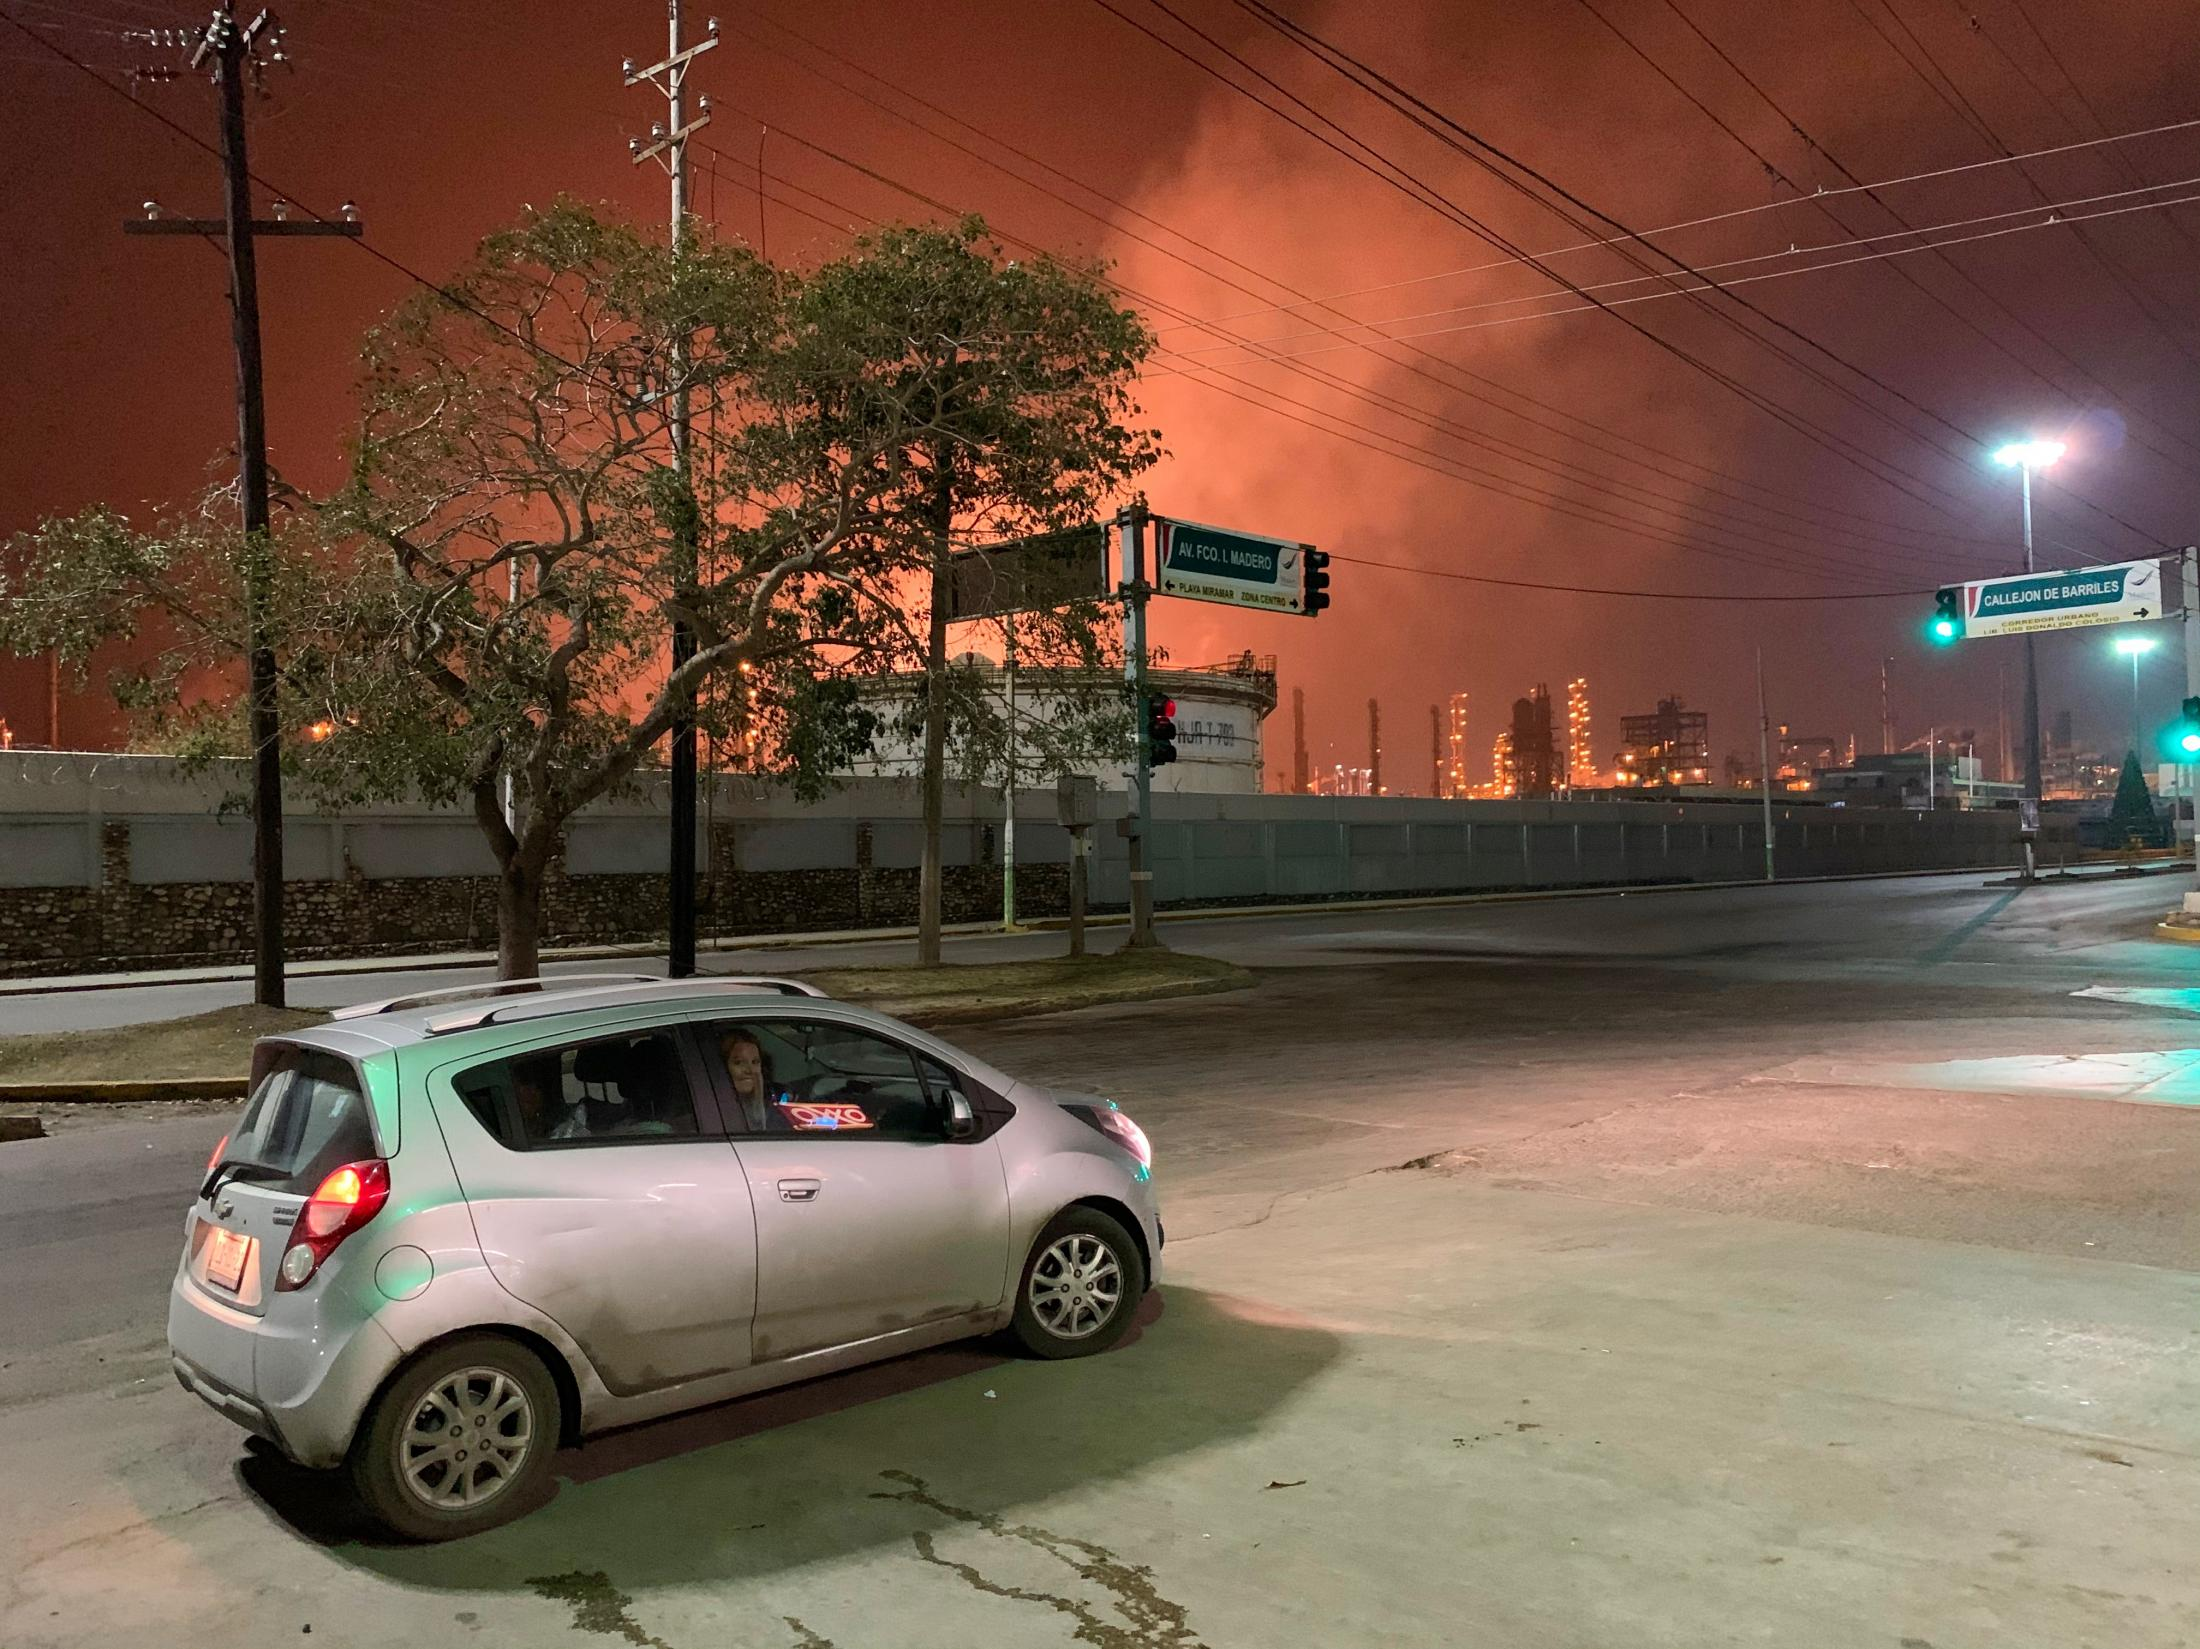 Ciudad Madero, Tamaulipas, México. 2019. My girlfriend's mother smiles from her car next the local refinery at night. My girlfriend's father drives the car while pretending to leave me behind as a joke. I was on my way to my girlfriend's house after spending the afternoon in a karaoke bar with them.